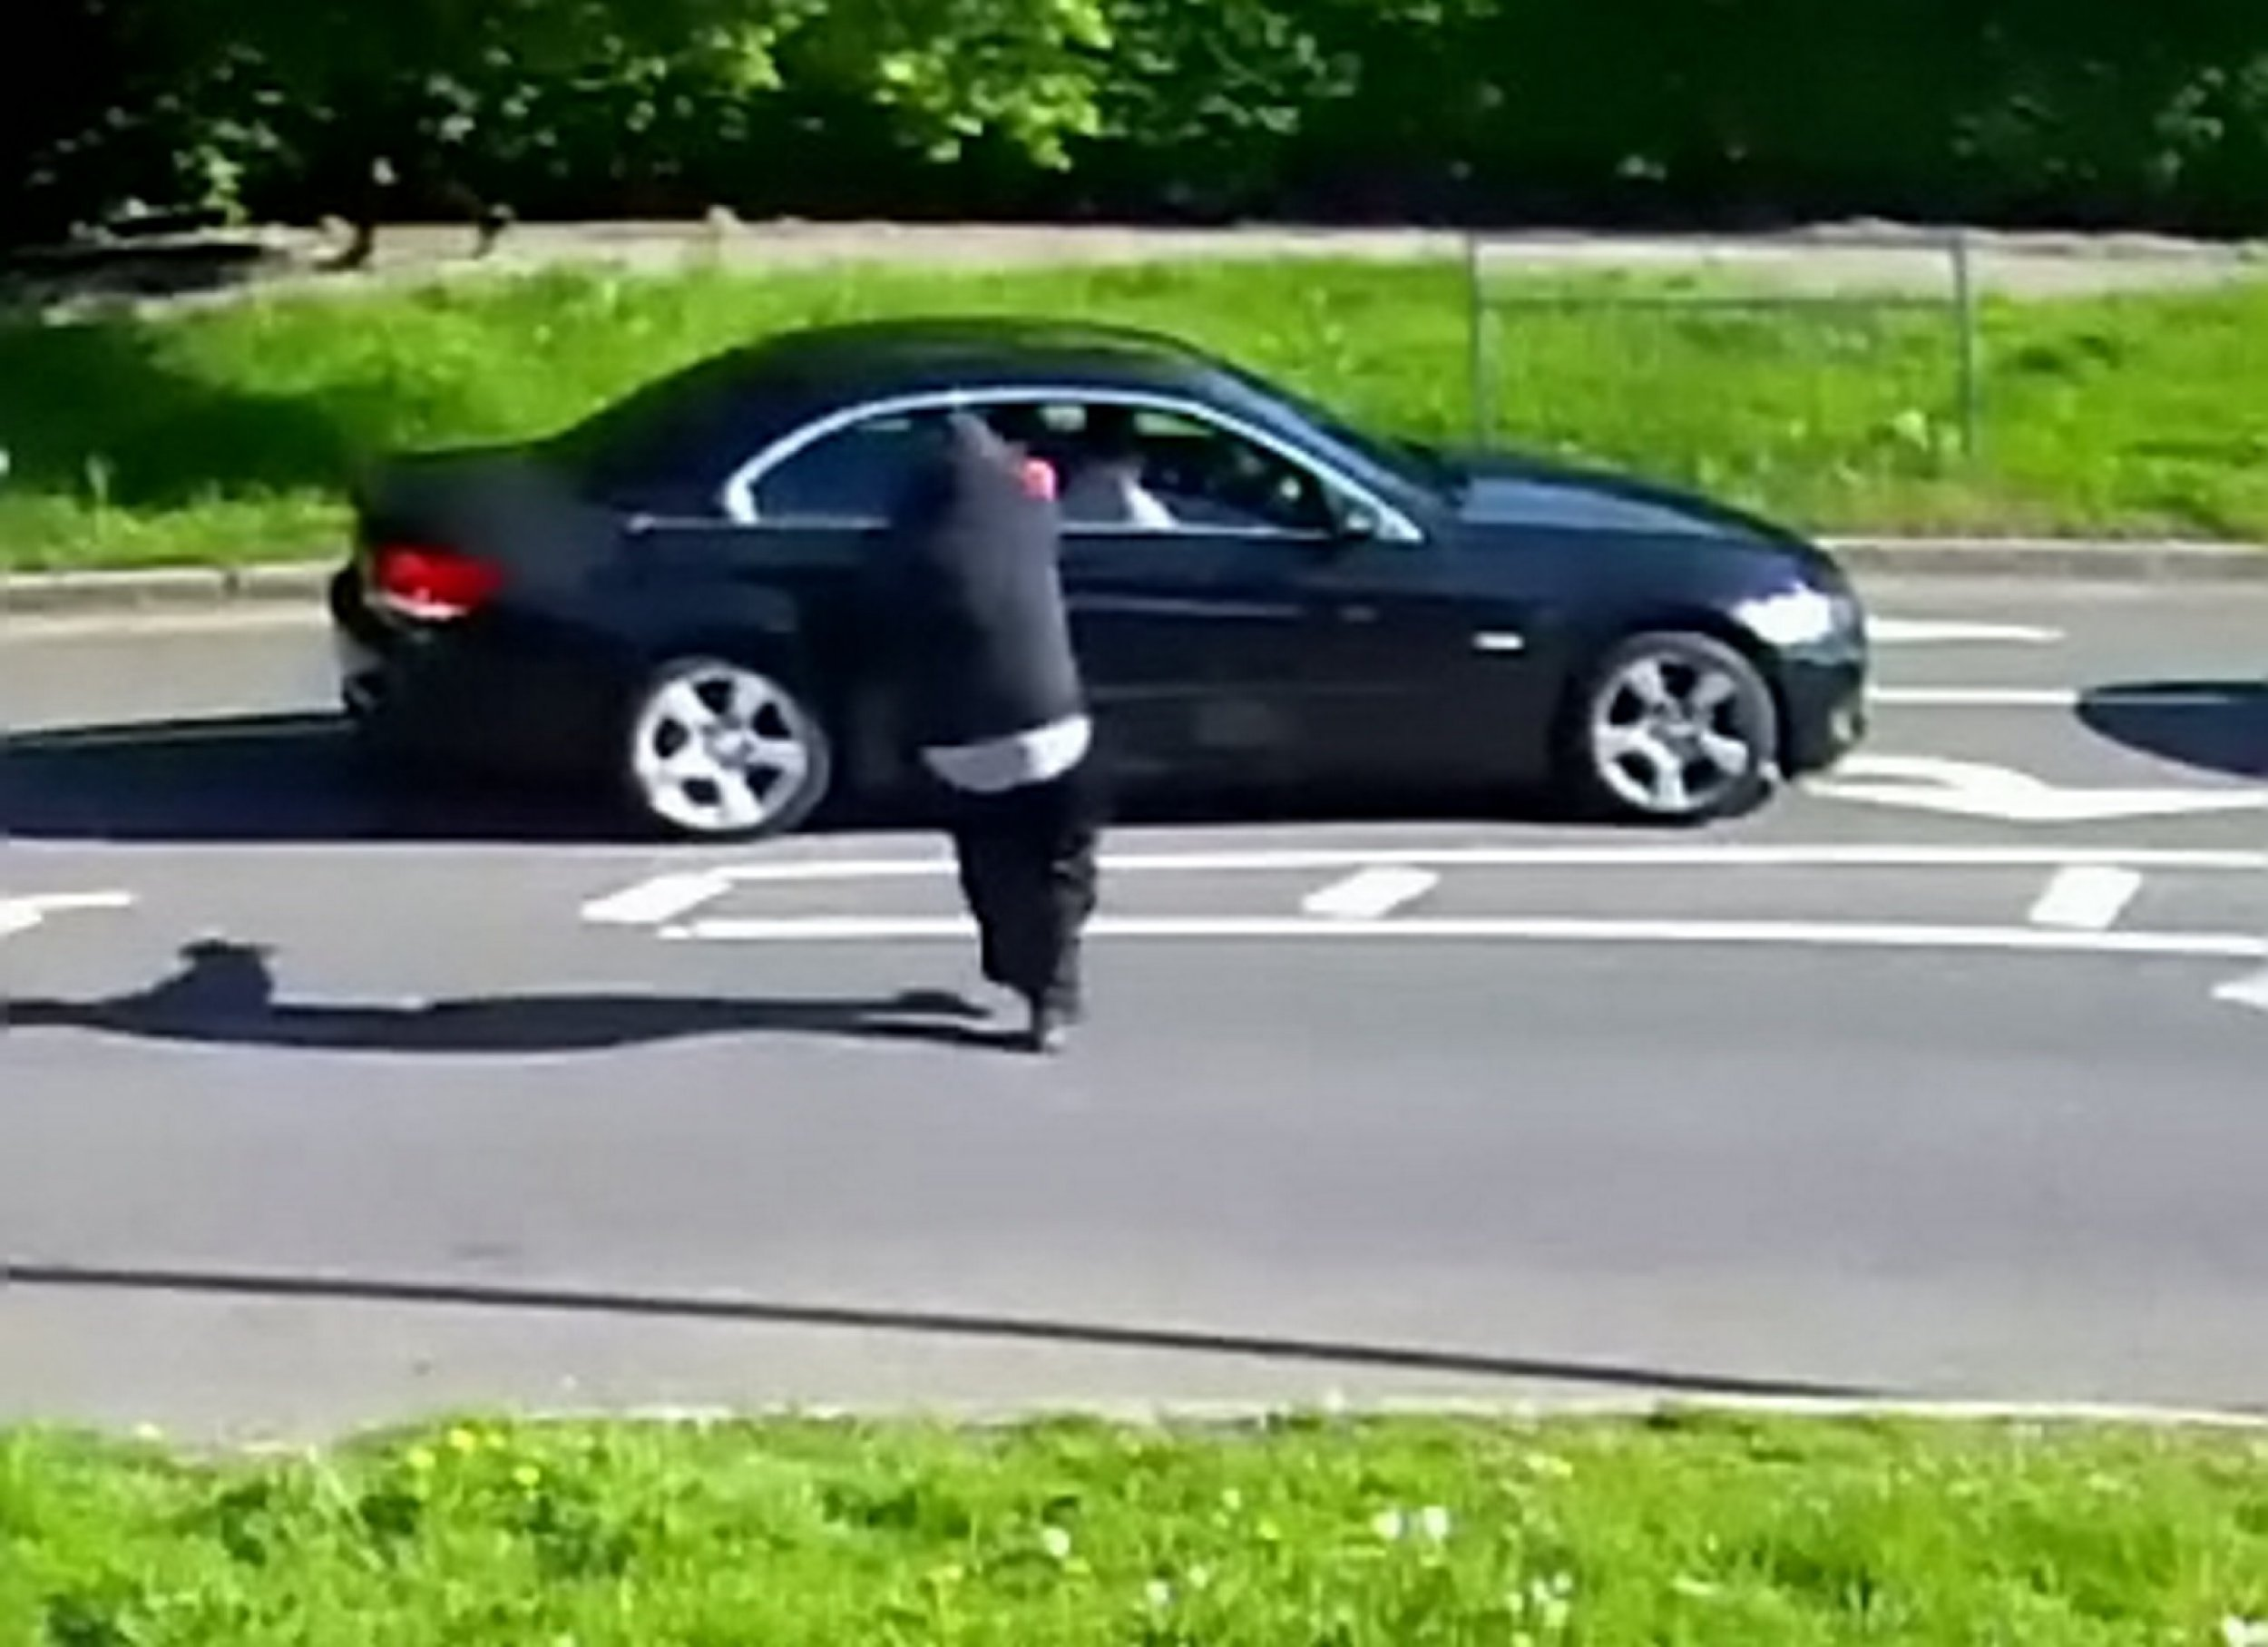 Detectives have released CCTV footage of an attempted murder as they appeal for witnesses to the shooting. See NATIONAL story NNSHOOT. Police were called at 08:40hrs on Monday, 14 May to reports of a shooting at the junction of Beverley Drive and Stag Lane in Brent. Officers and firearms officers attended the scene, along with a specialist police dog, to speak to the victim and contain the scene. The victim, a 51-year-old woman, told officers that she had left her home at around 08:30hrs to make her way to work. At the traffic lights on Beverley Drive and Stag Lane the suspect approached the car and fired three times towards her vehicle. The driver?s window smashed first and the victim remembers hearing two other shots being fired into her car. One of the bullets caused the passenger window to smash. She was not injured. Three bullet casings were found at the scene. The suspect then ran down the road before getting into an unknown vehicle, heading in the direction of Queensbury Station.